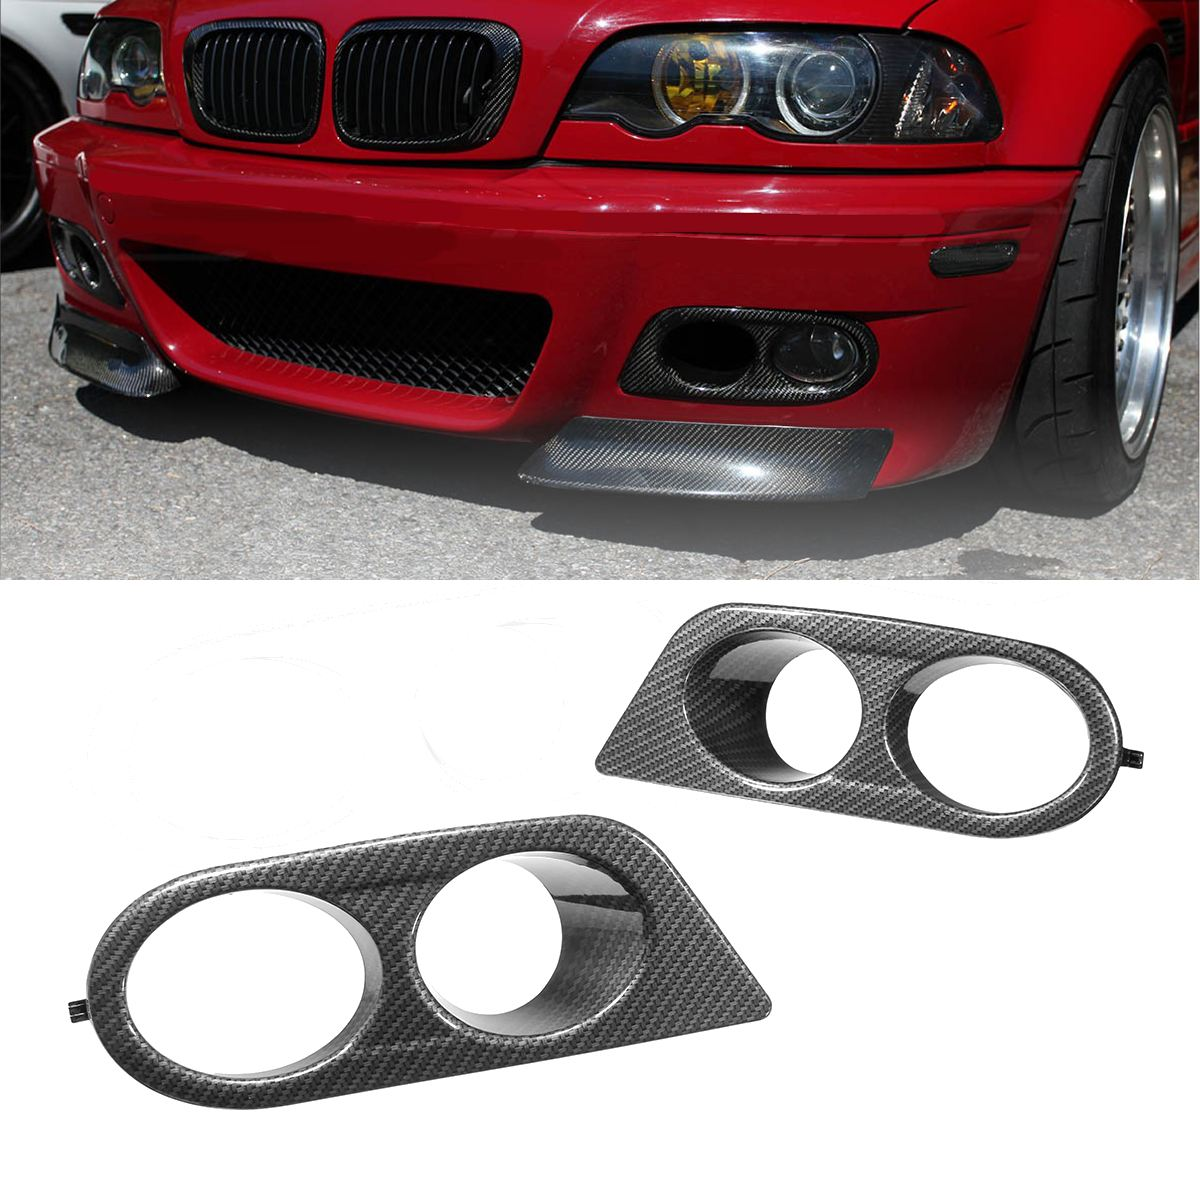 Car-Fog-Light-Covers Surround Carbon-Fiber Glossy Black Bmw E46 Pair For M3 2001-2006